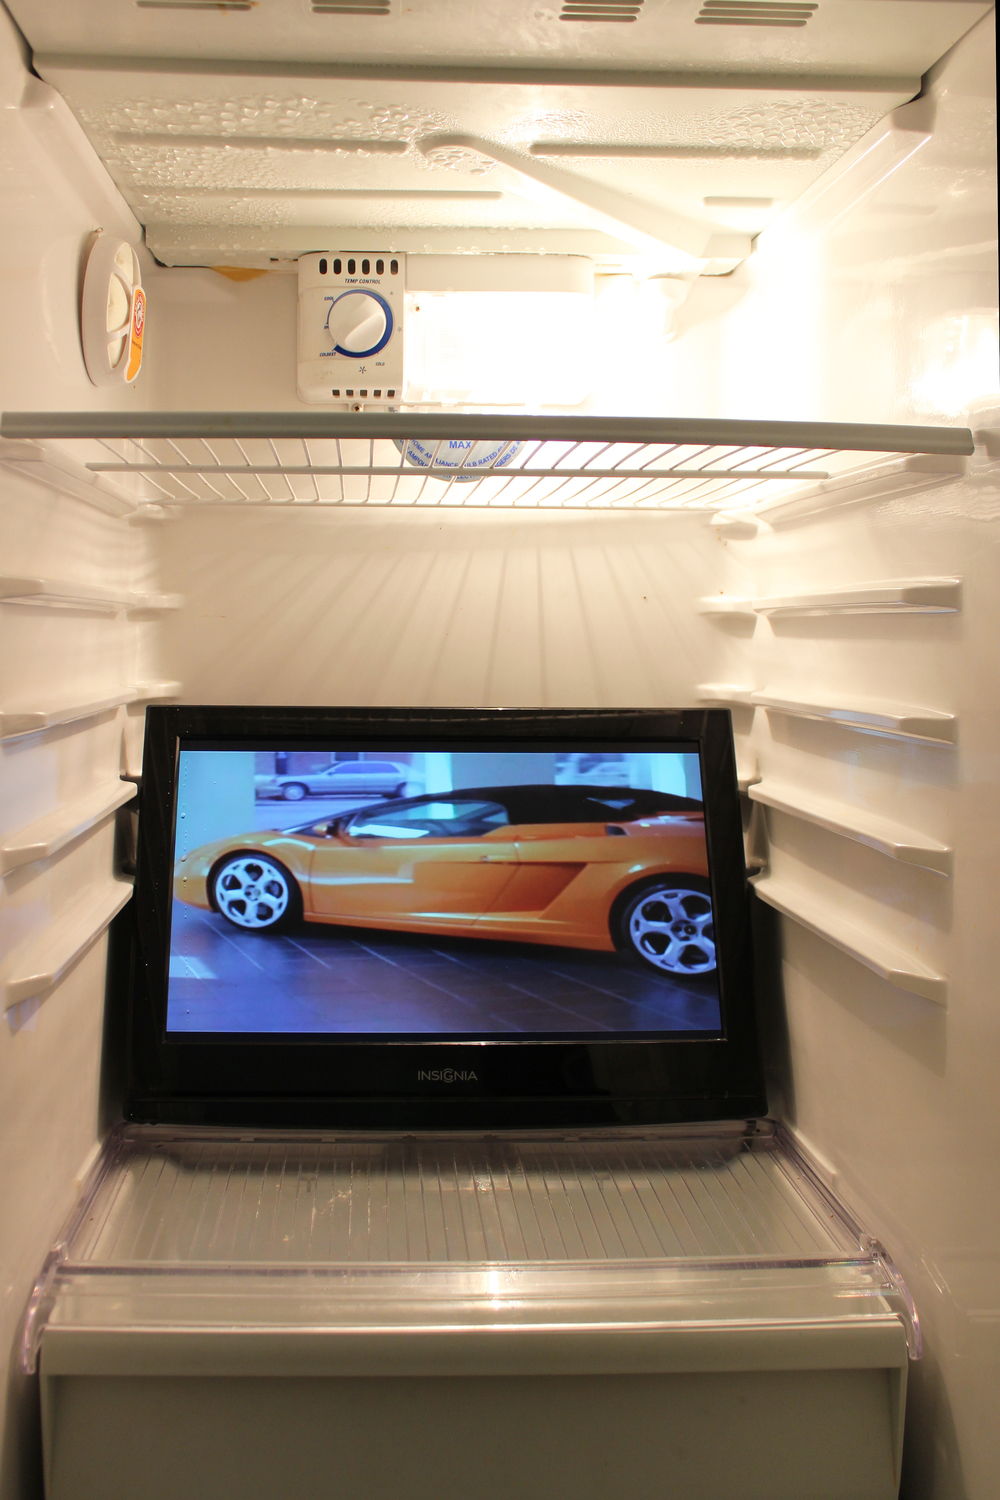 Ben Dowell,  2008 Lamborghini Gallardo (One Mind) , 2008, dvd, monitor, refrigerator, dimensions variable